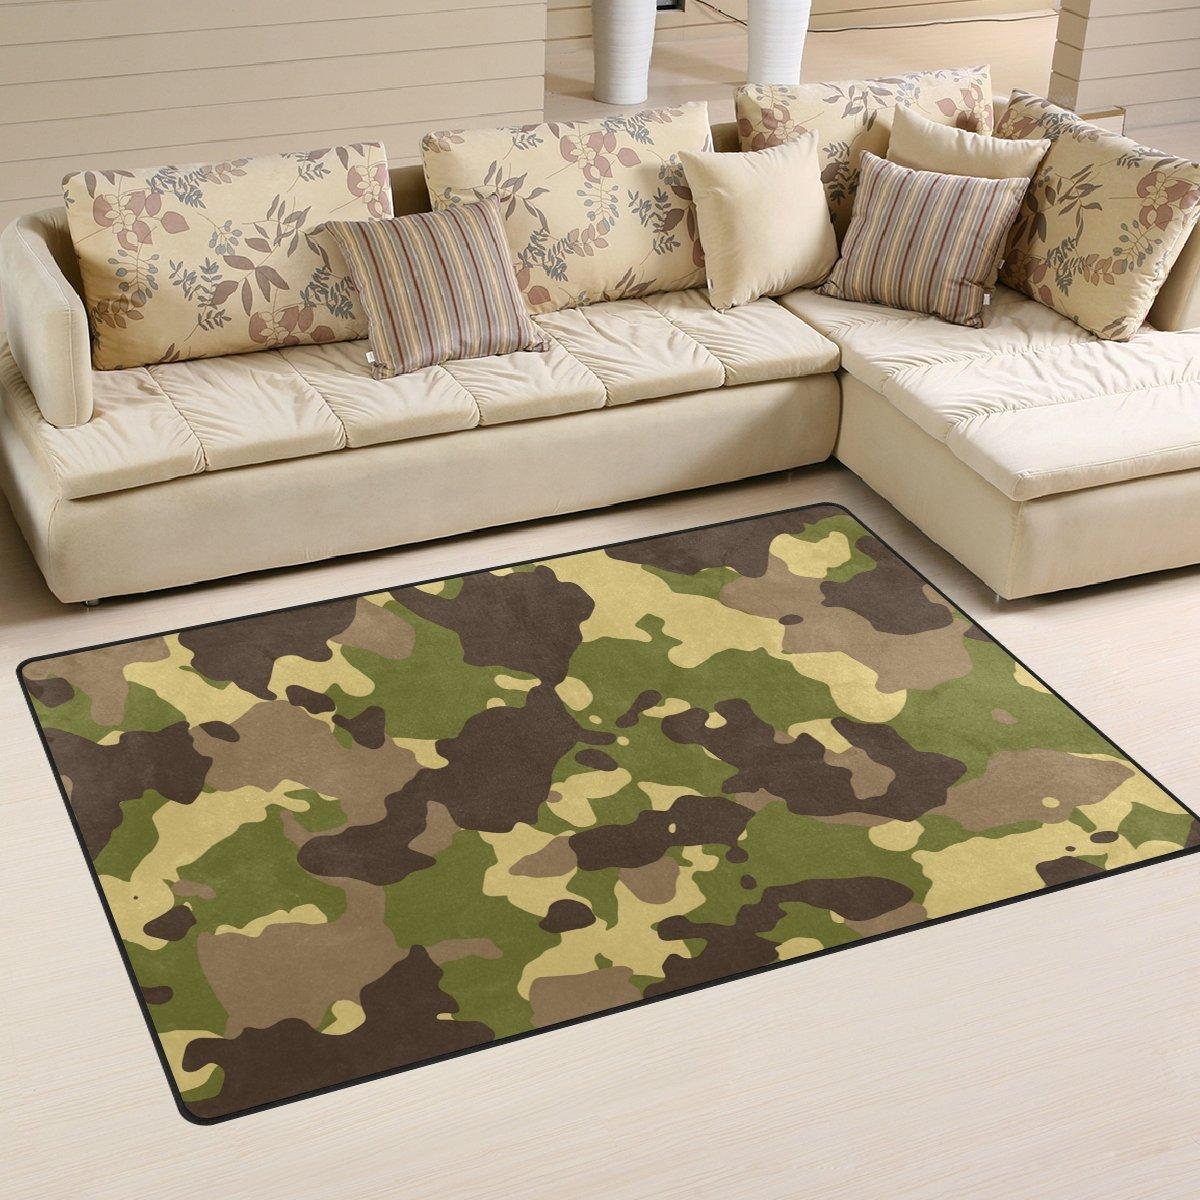 WellLee Area Rug, Camouflage Color1 Floor Rug Non-Slip Doormat for Living Dining Dorm Room Bedroom Decor 60x39 inch WelllLee dtfh-001